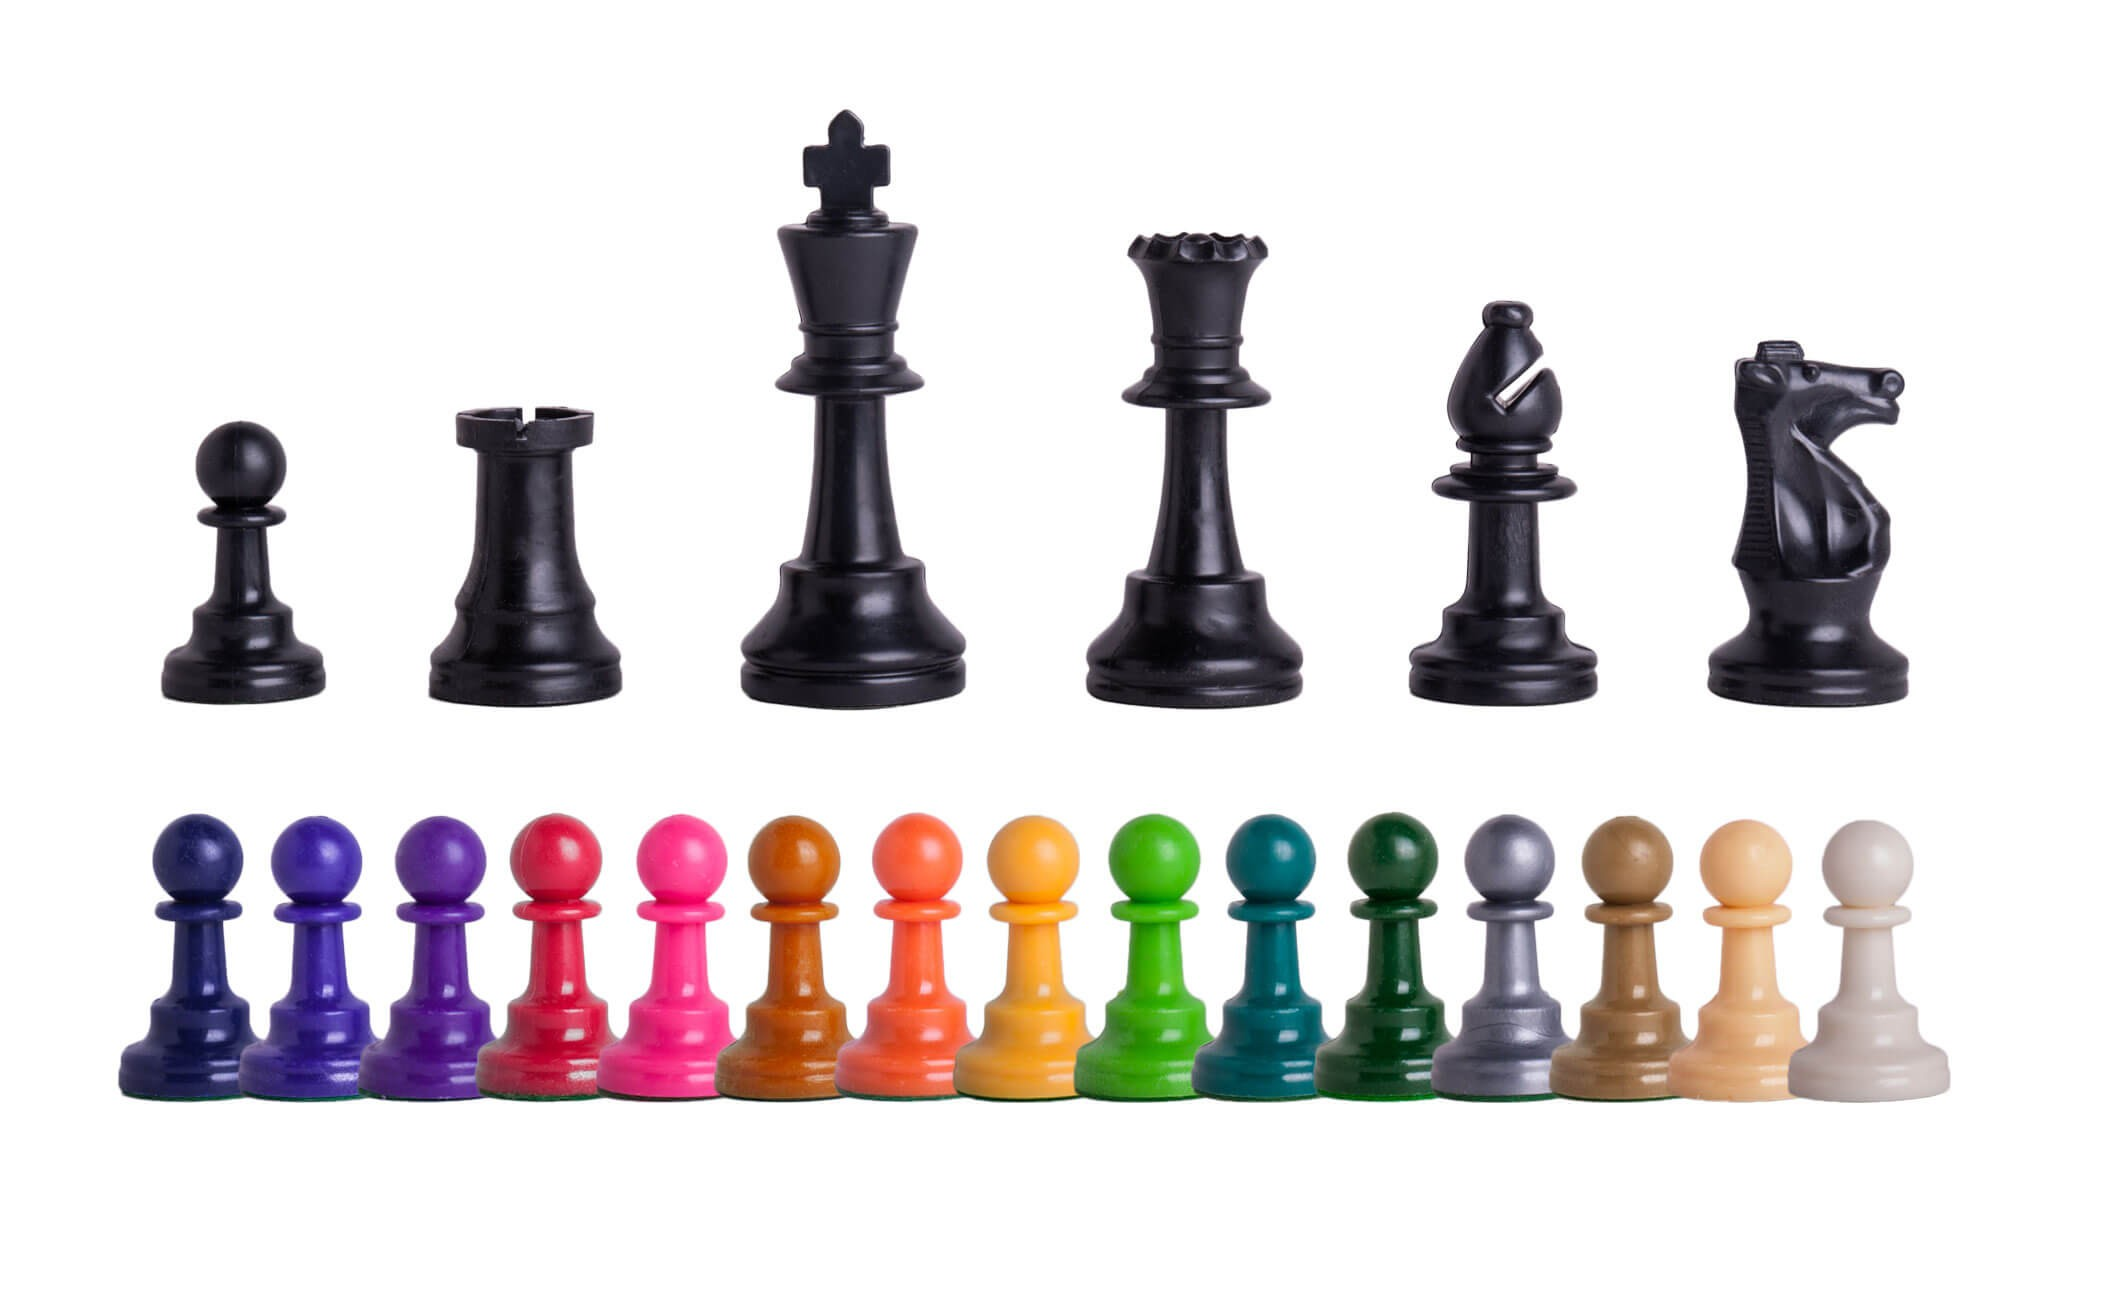 Triple Weighted Colored Regulation Plastic Chess Pieces - 3.75